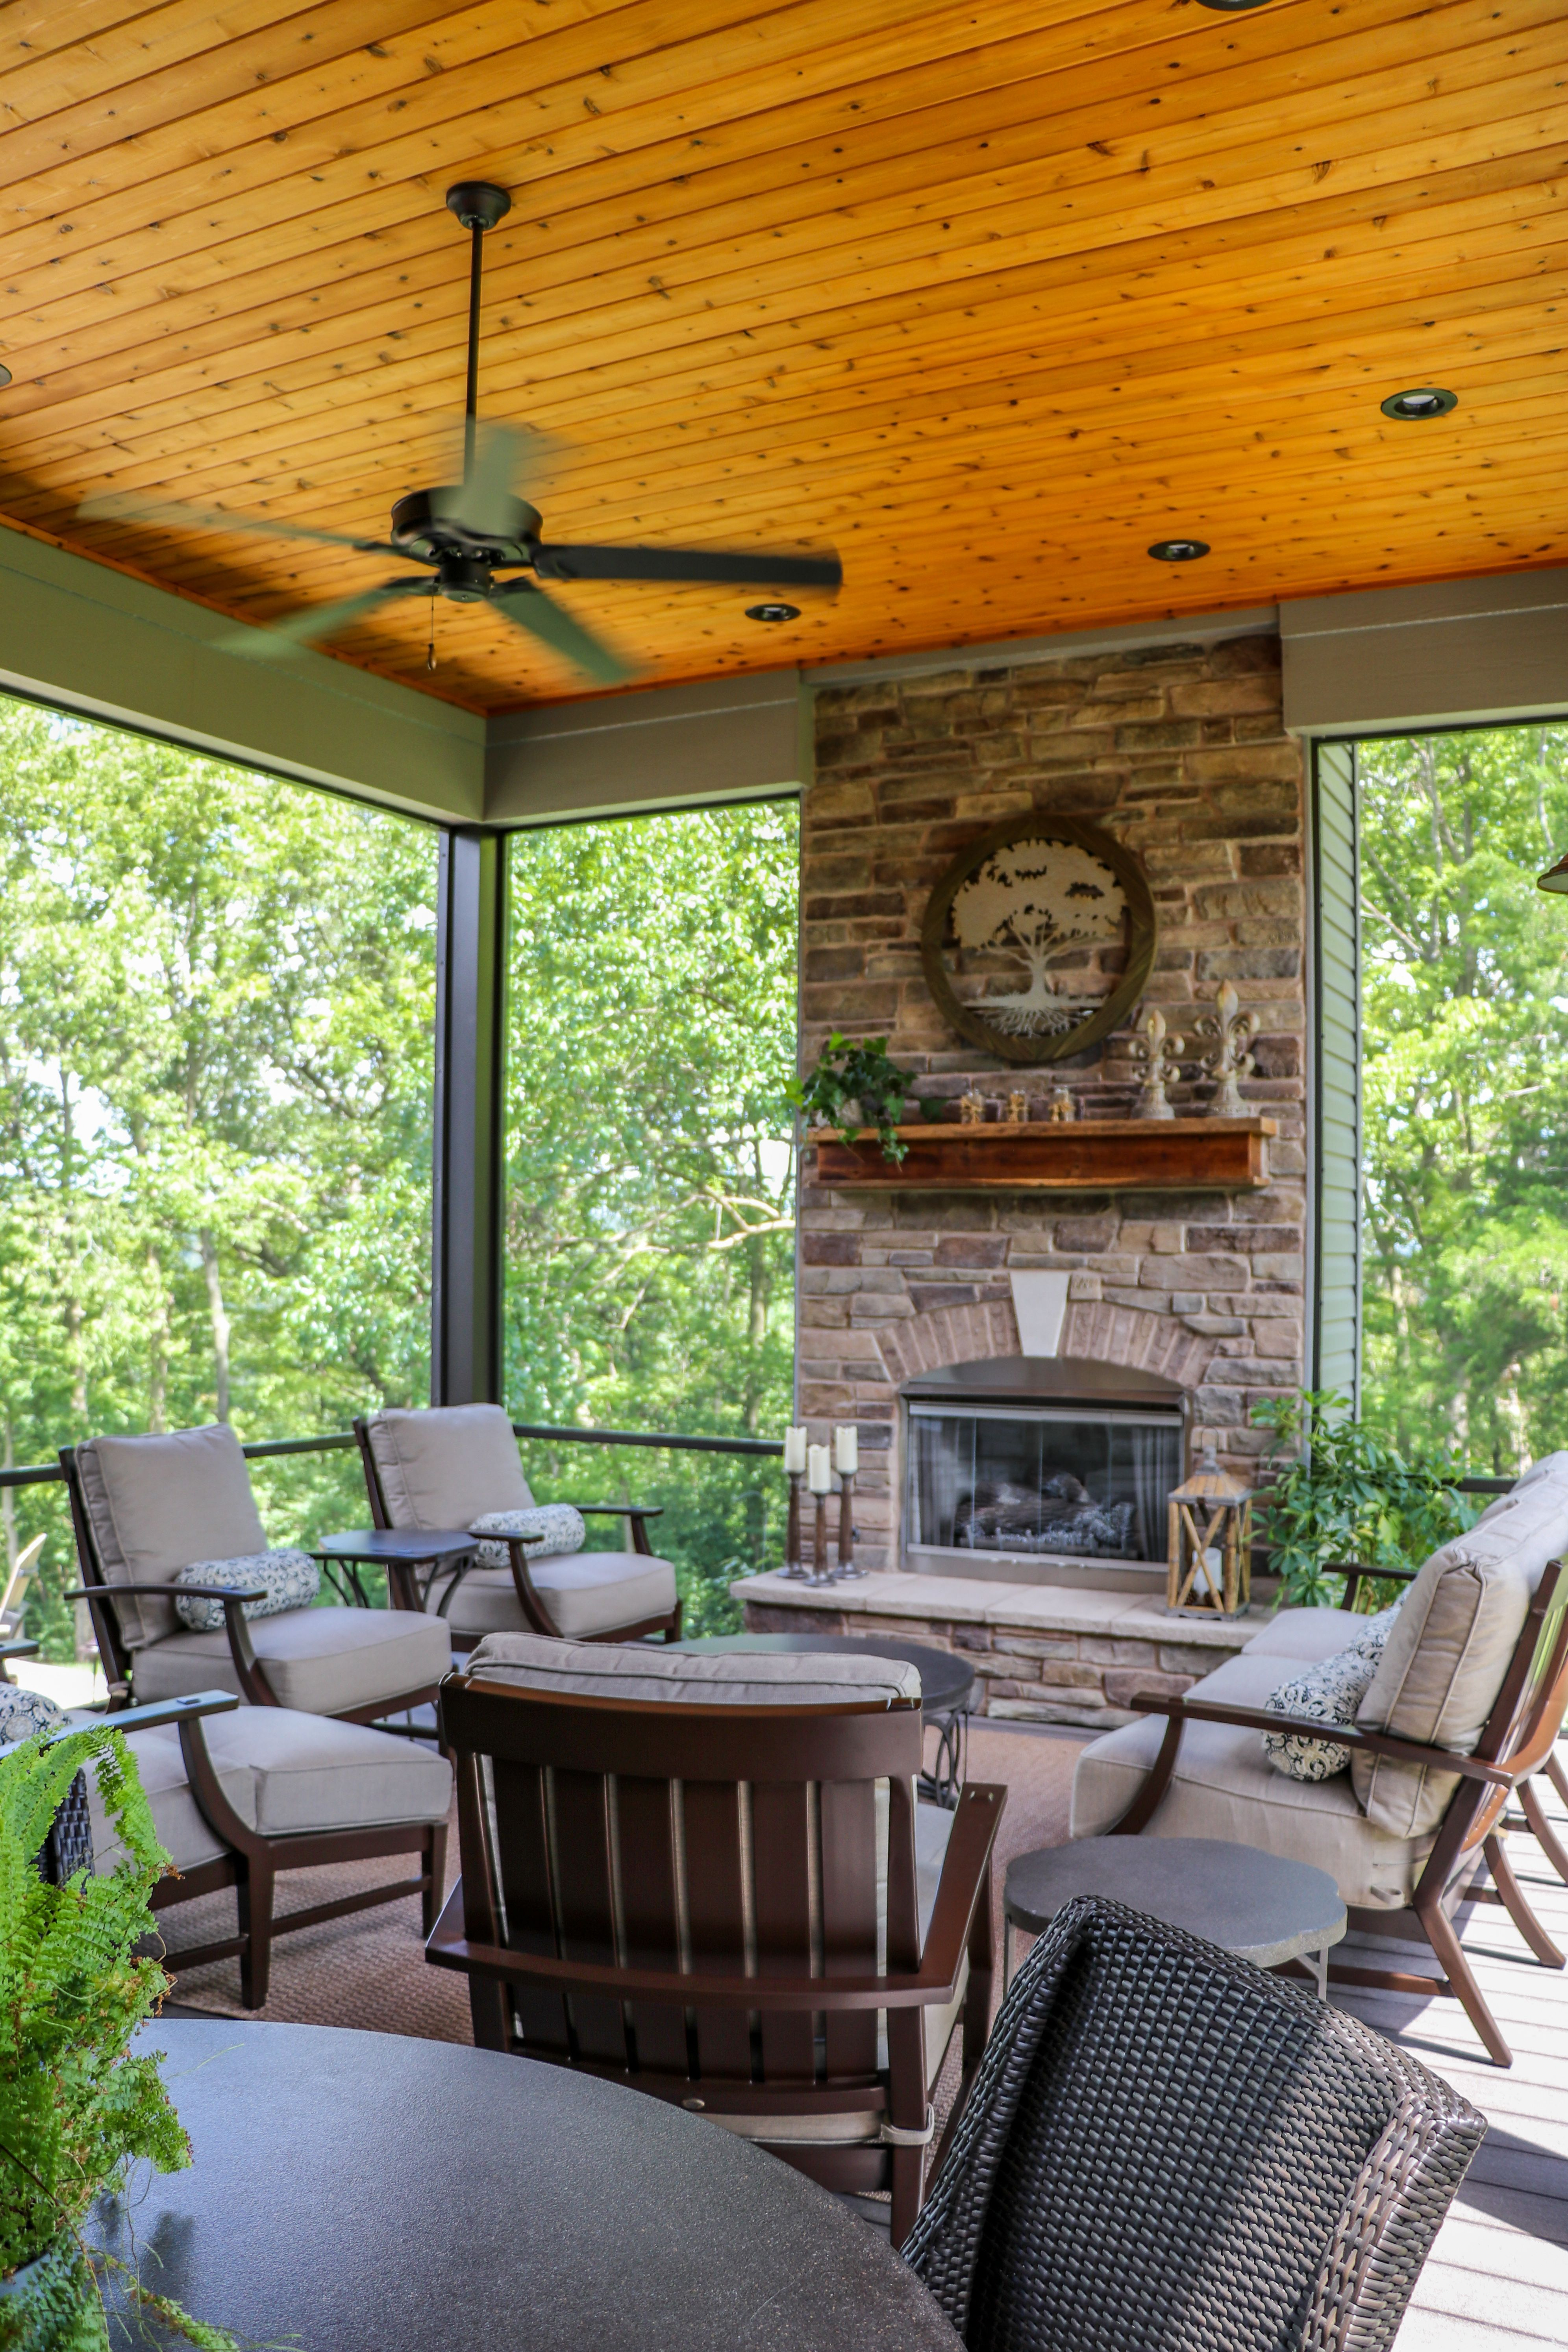 Screen Room With Fireplace Feature | Home addition ... on Building Outdoor Living Space id=15571